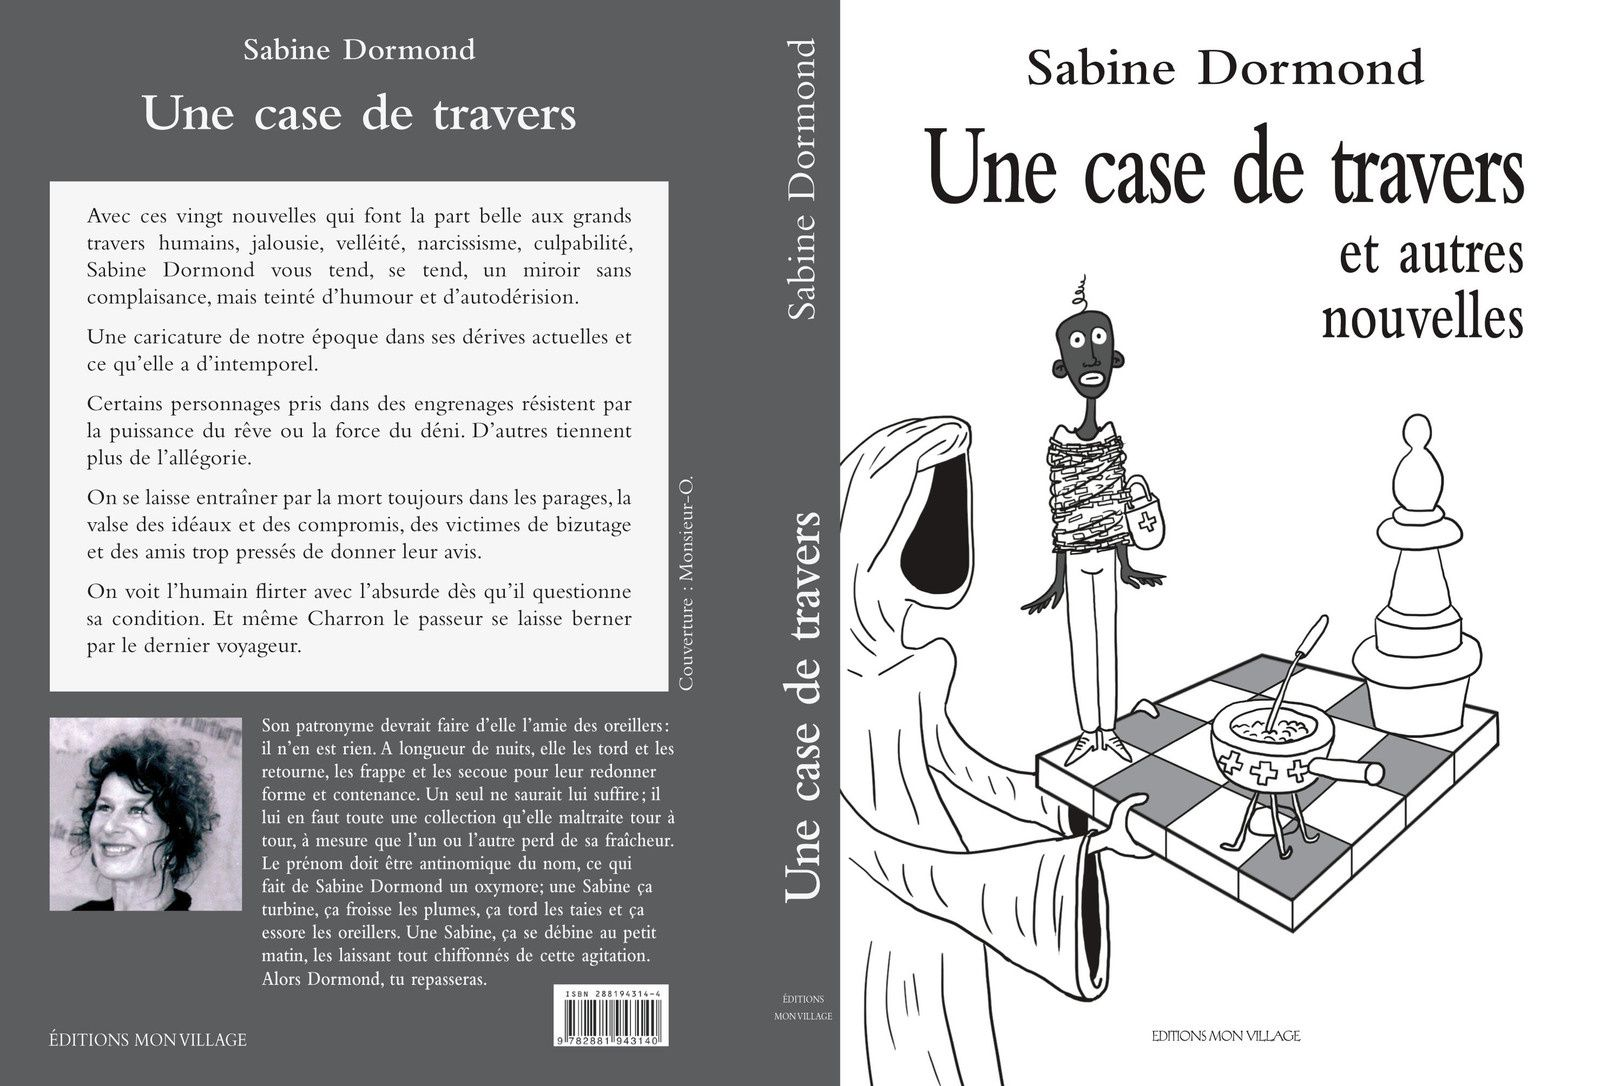 Une case de travers